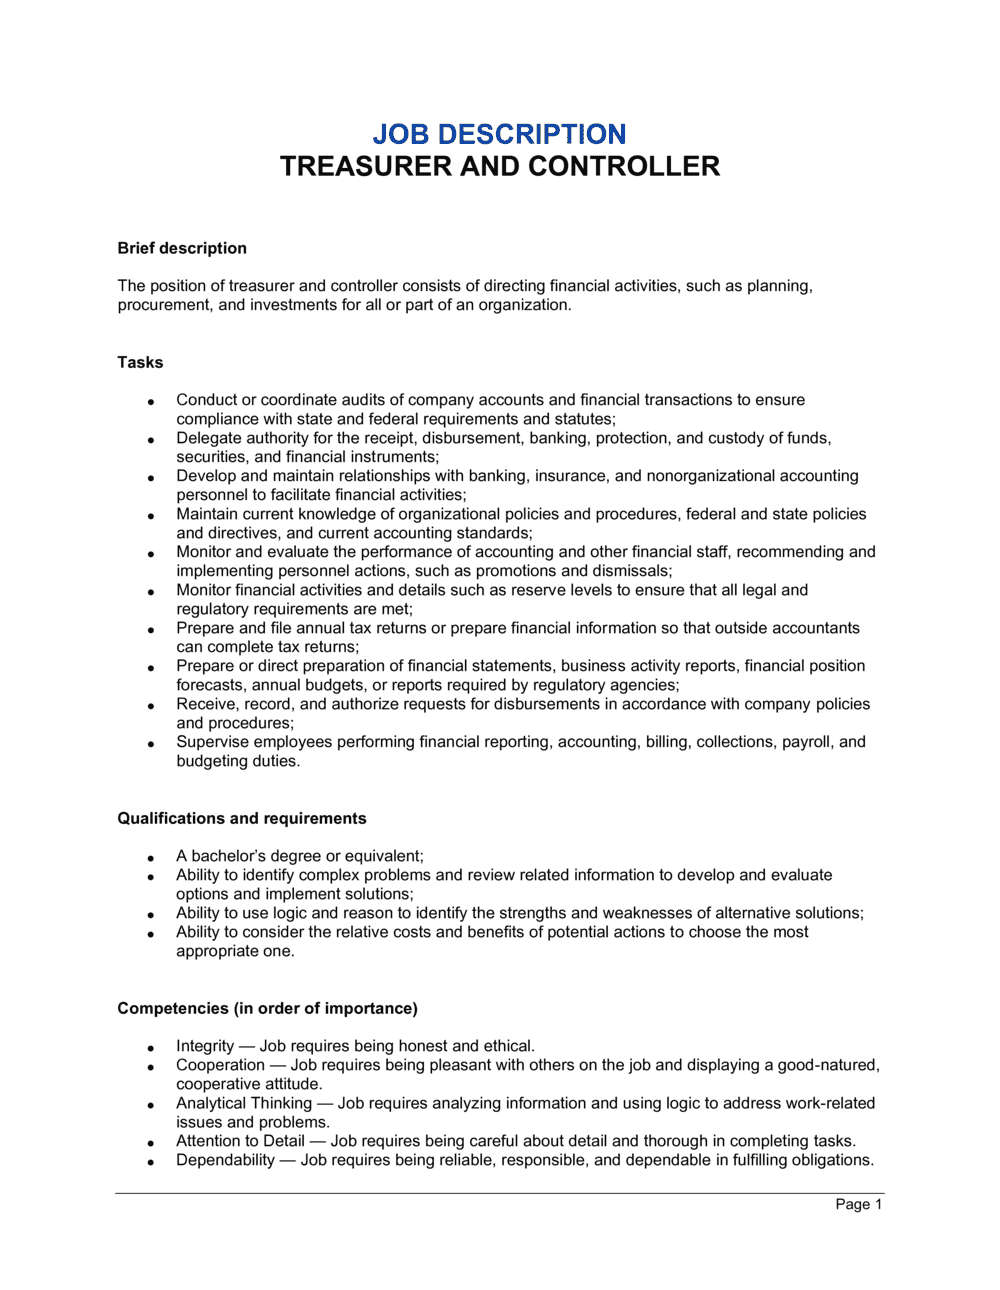 Business-in-a-Box's Treasurer and Controller Job Description Template